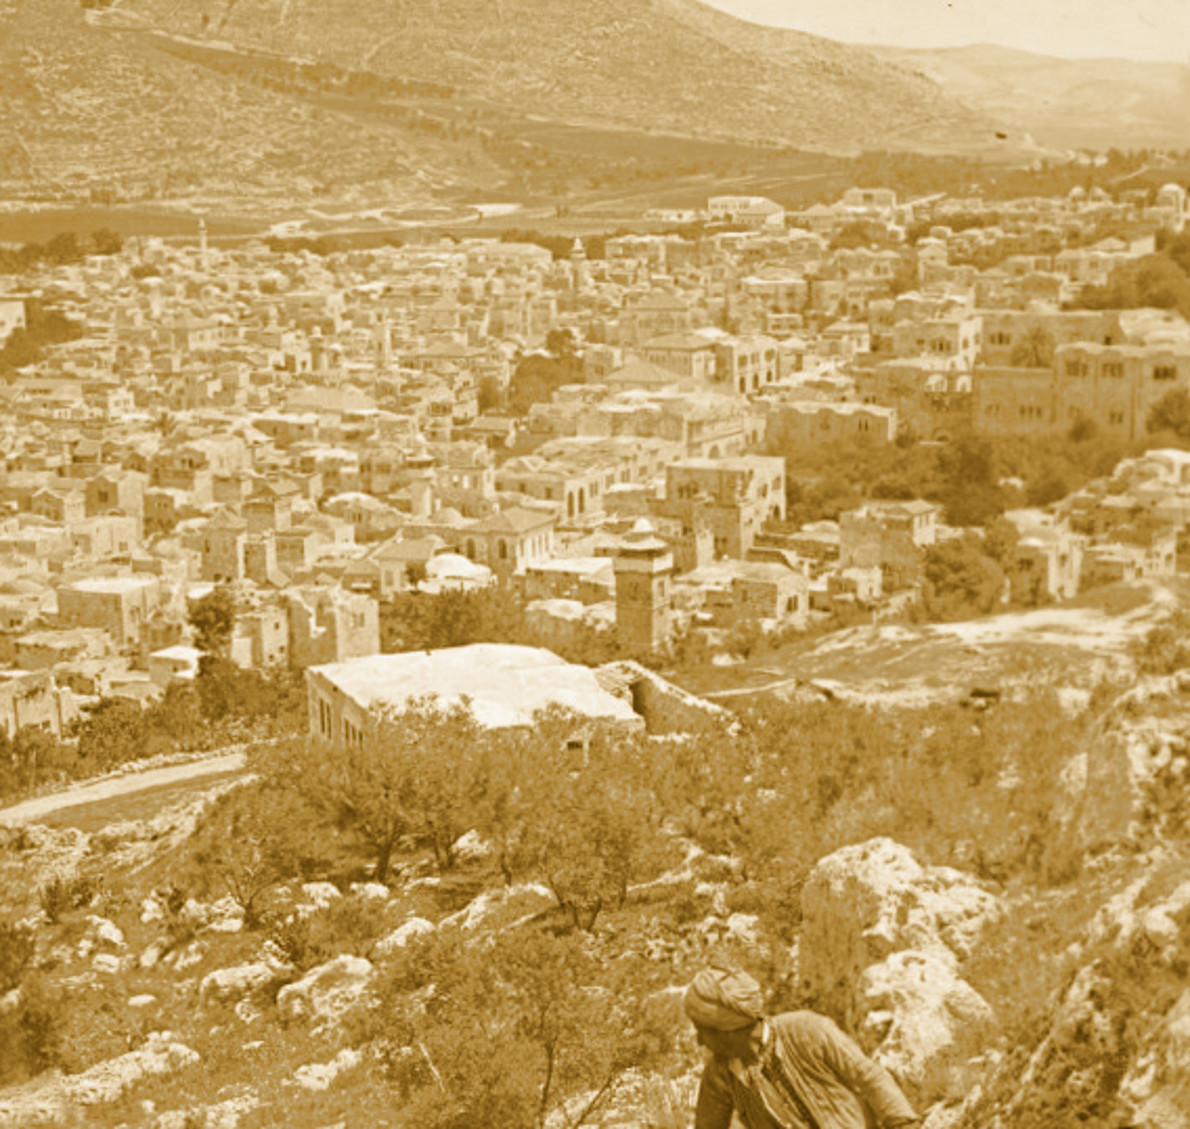 Nablus - نابلس : NABLUS - Late 19th, early 20th c. 59